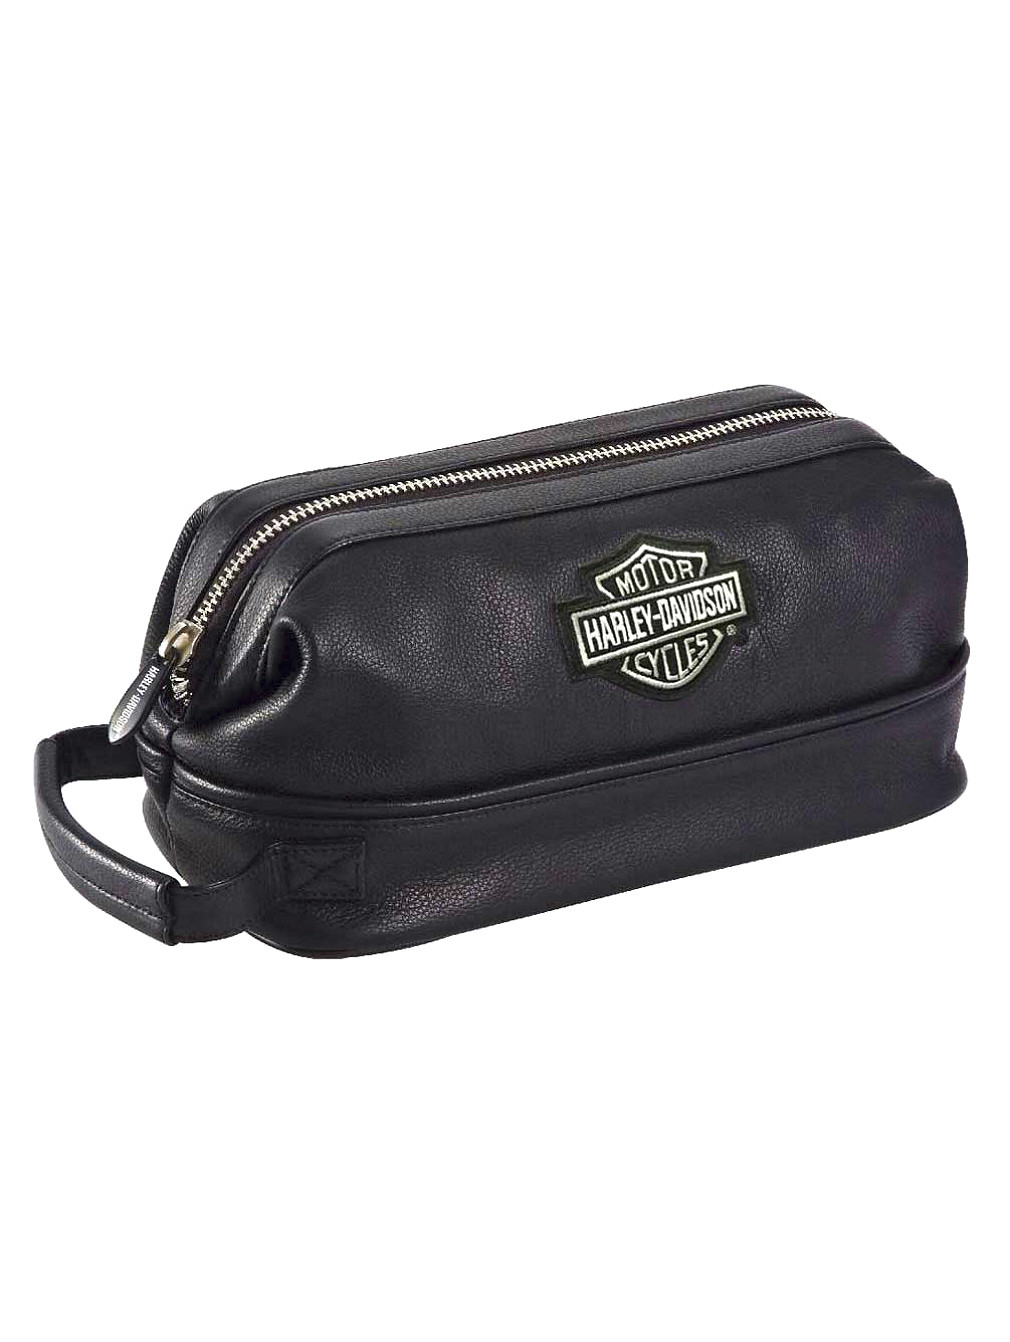 Harley-Davidson® Leather Toiletry Bag